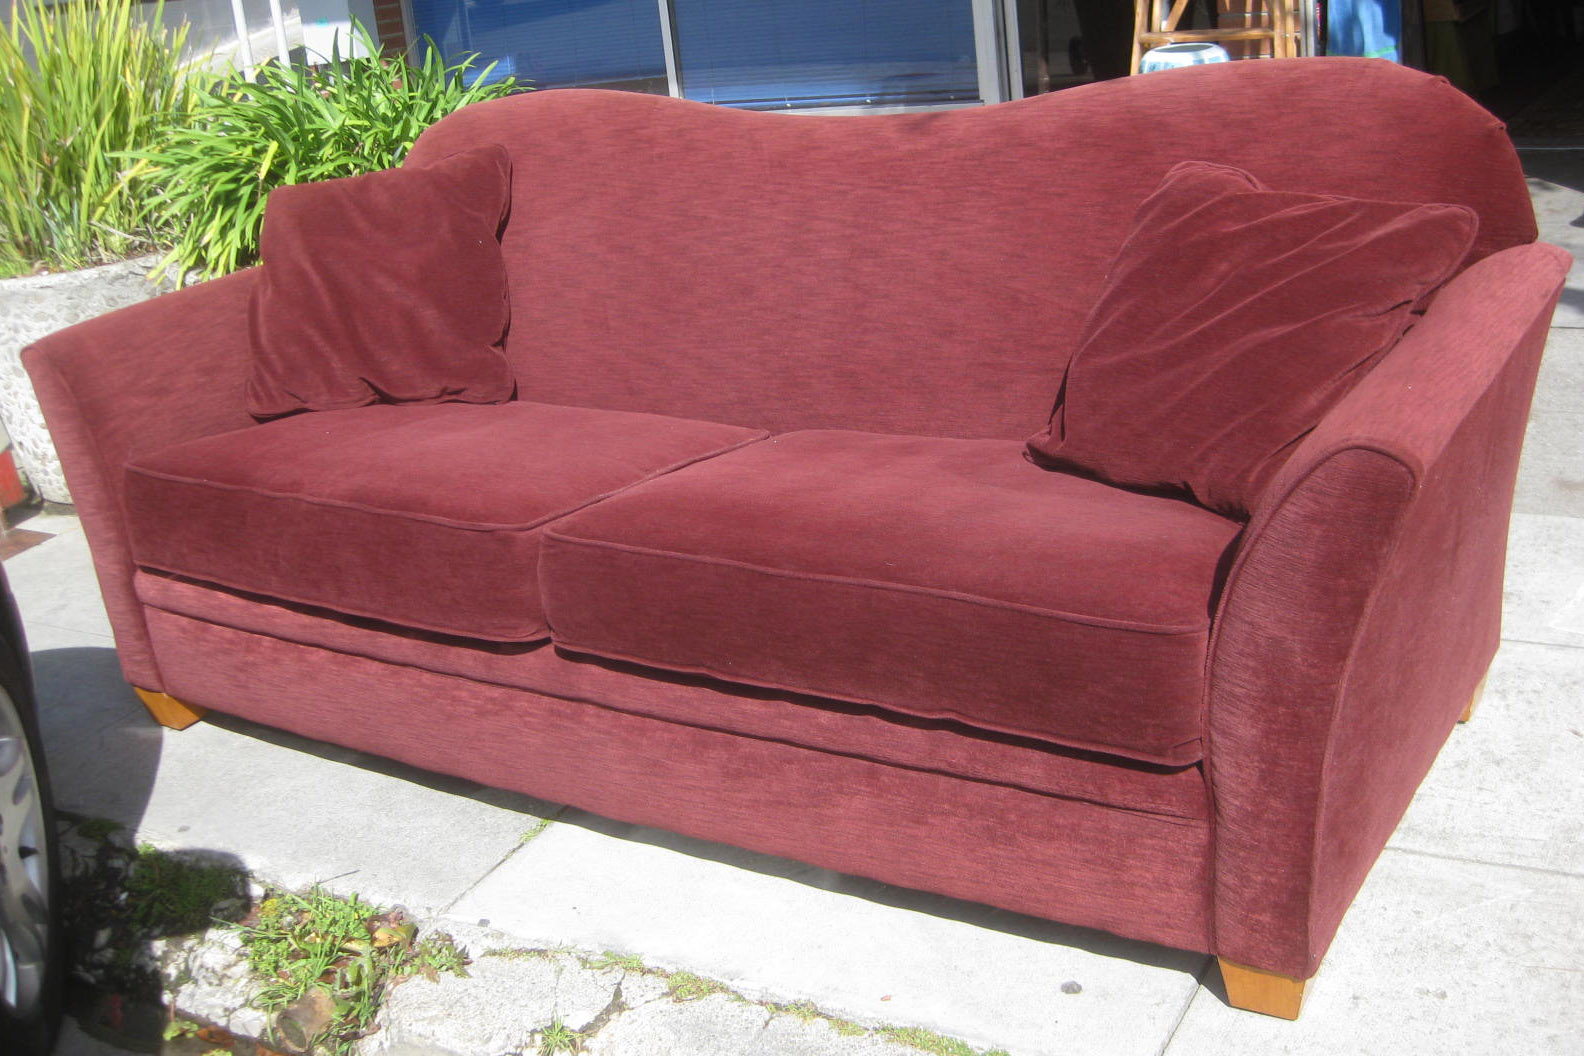 UHURU FURNITURE & COLLECTIBLES SOLD Plush Burgundy Sofa